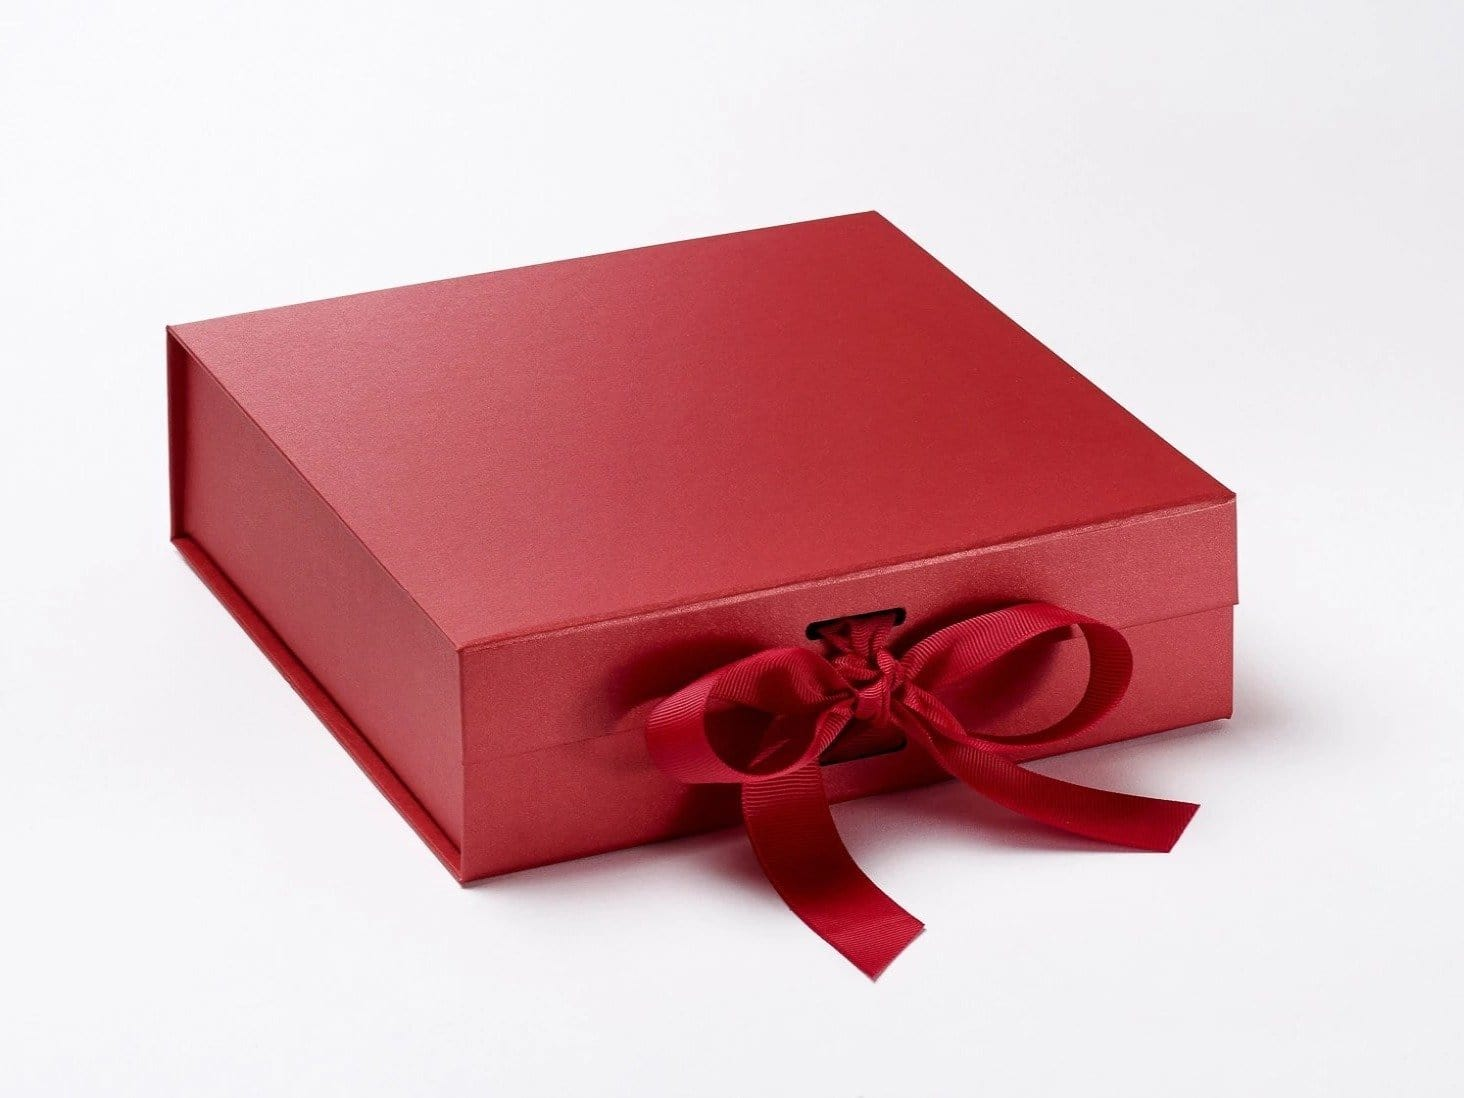 Medium Red Slot Gift Box with changeable ribbon and magnetic closures from Foldabox